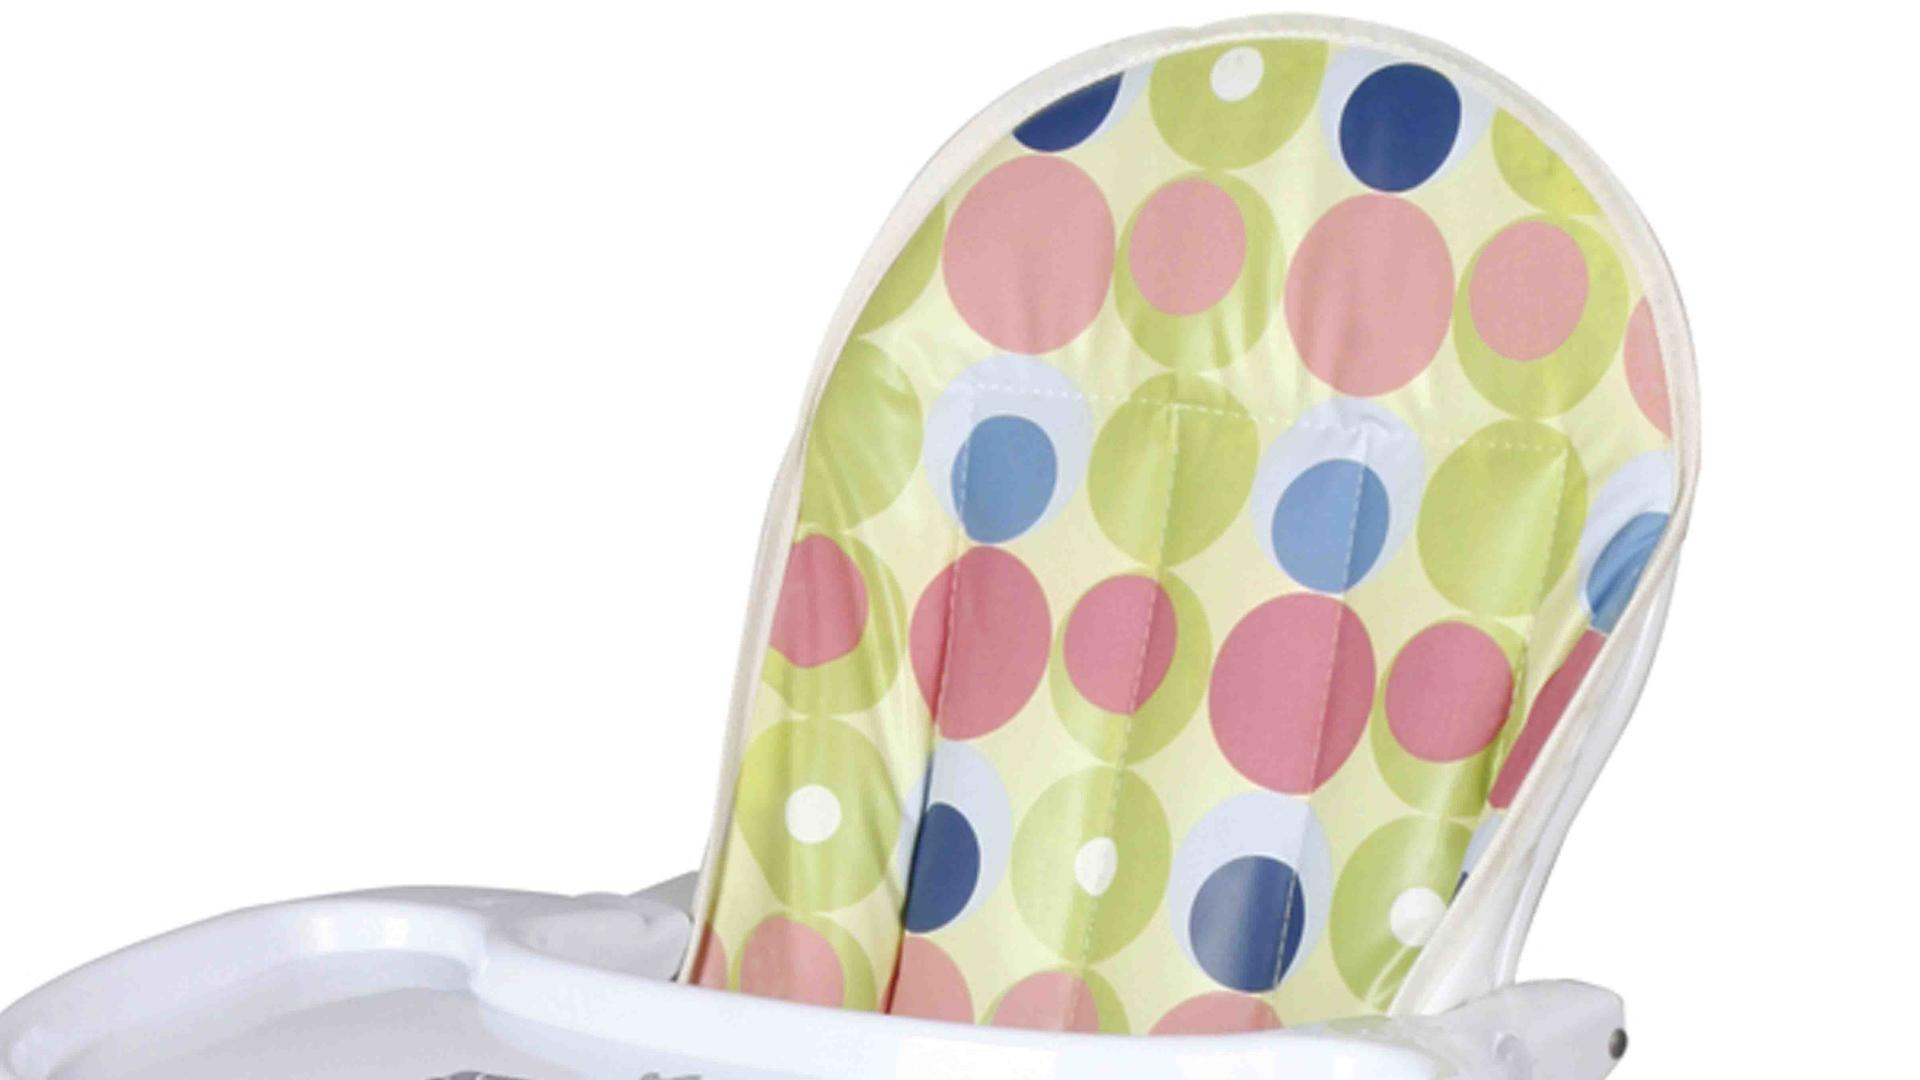 Aoqi plastic baby chair price manufacturer for livingroom